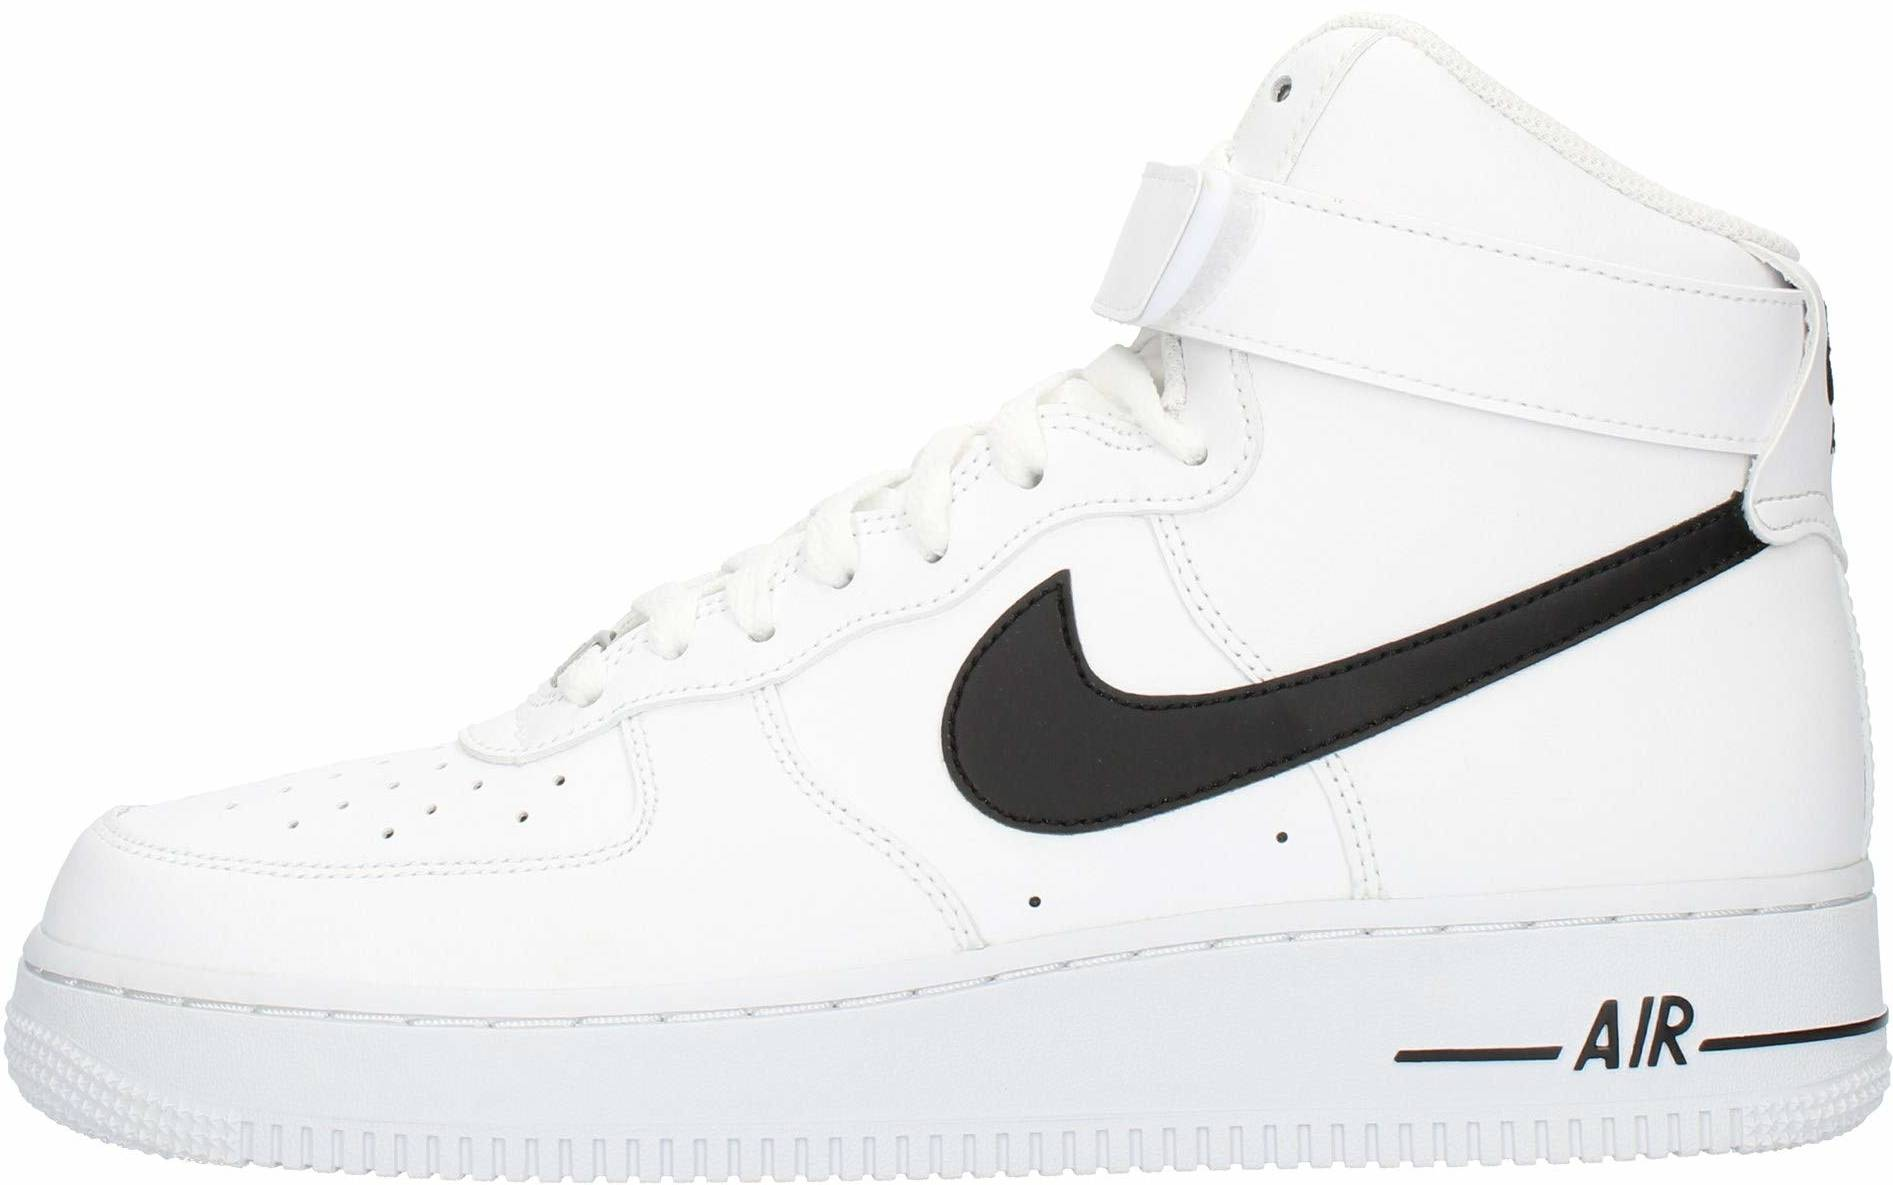 Save 14% on Nike Air Force 1 Sneakers